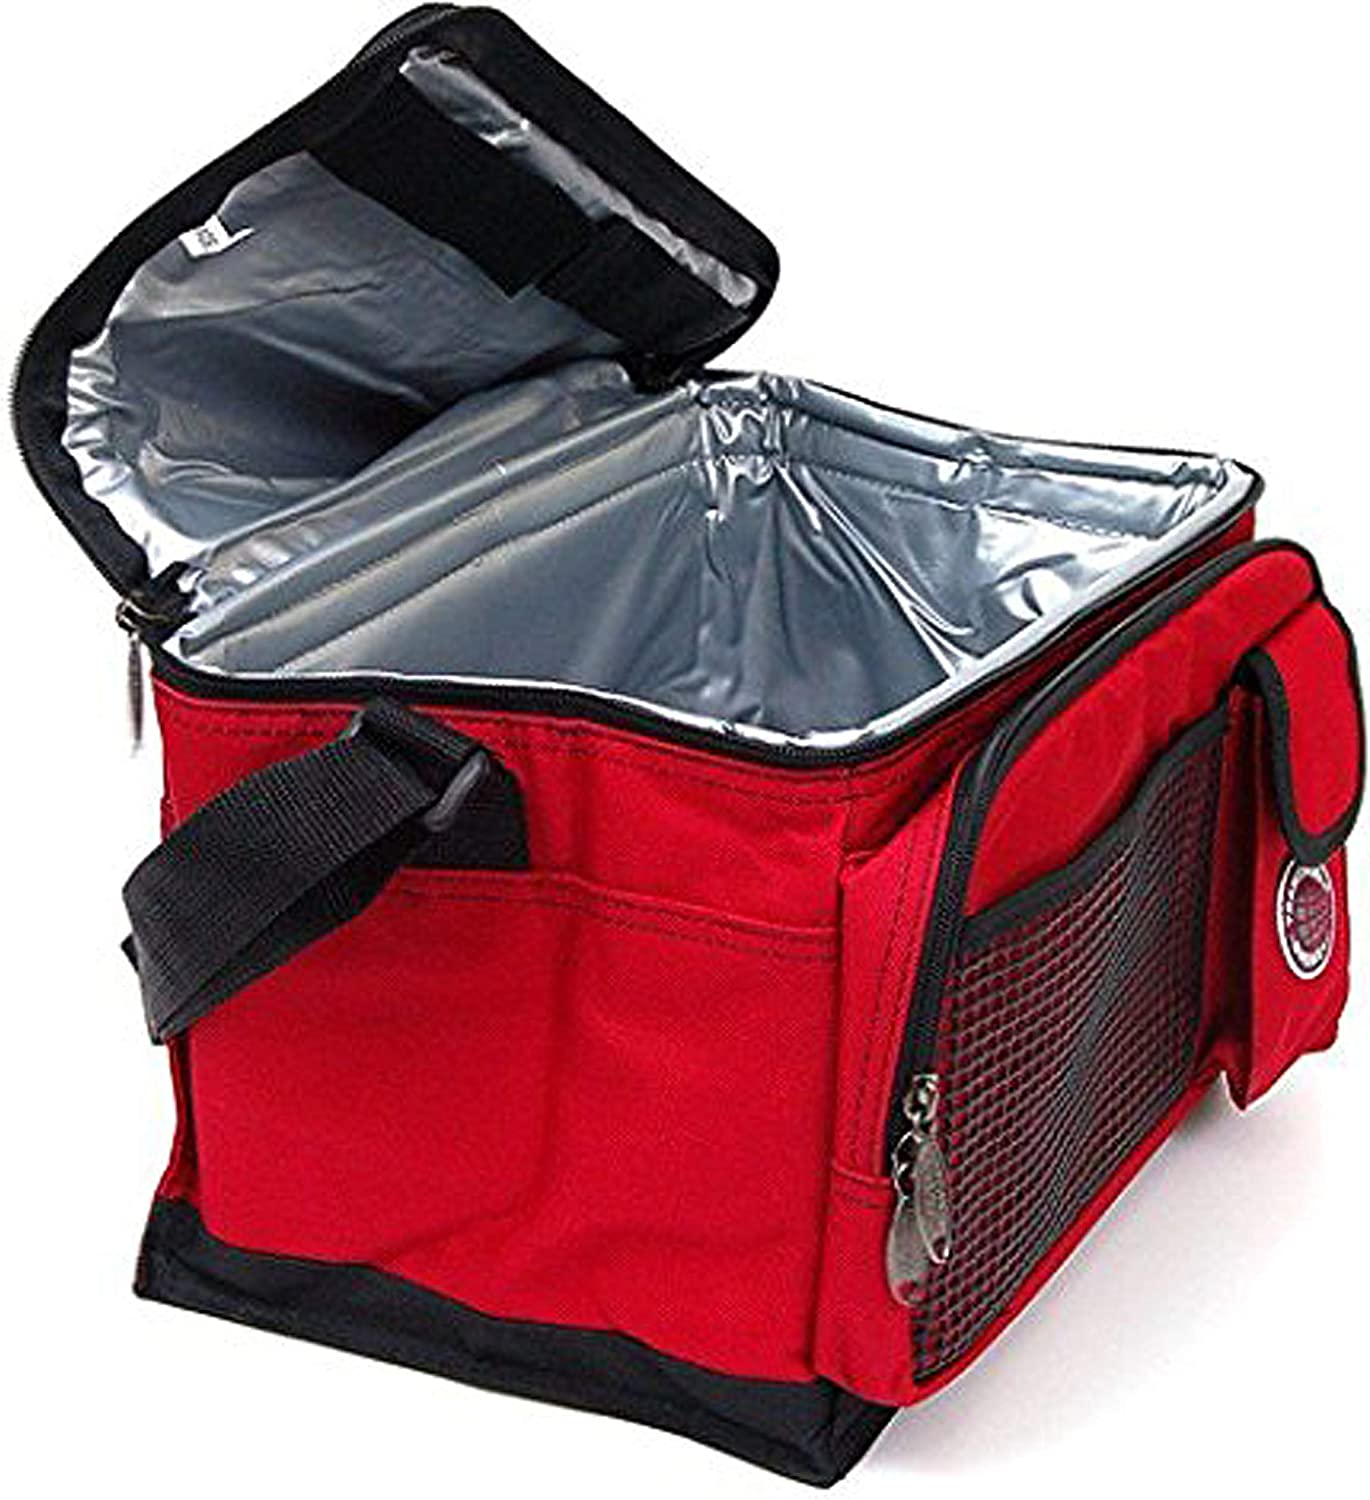 Many Colors and Size Available Transworld Durable Deluxe Insulated Lunch Cooler Bag by Transworld 9 x 7 x 8, Red